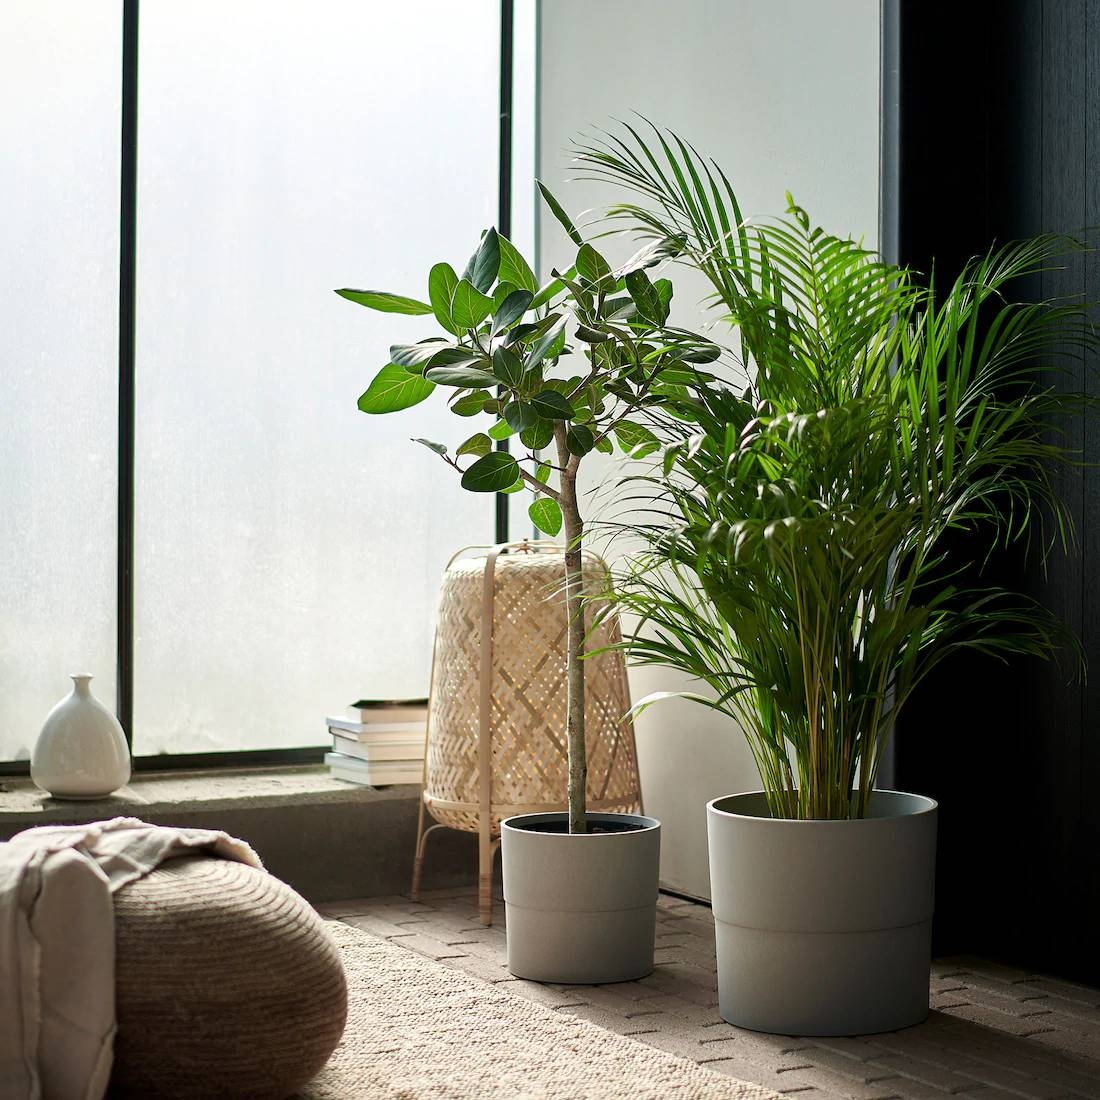 dypsis-lutescens-ikea